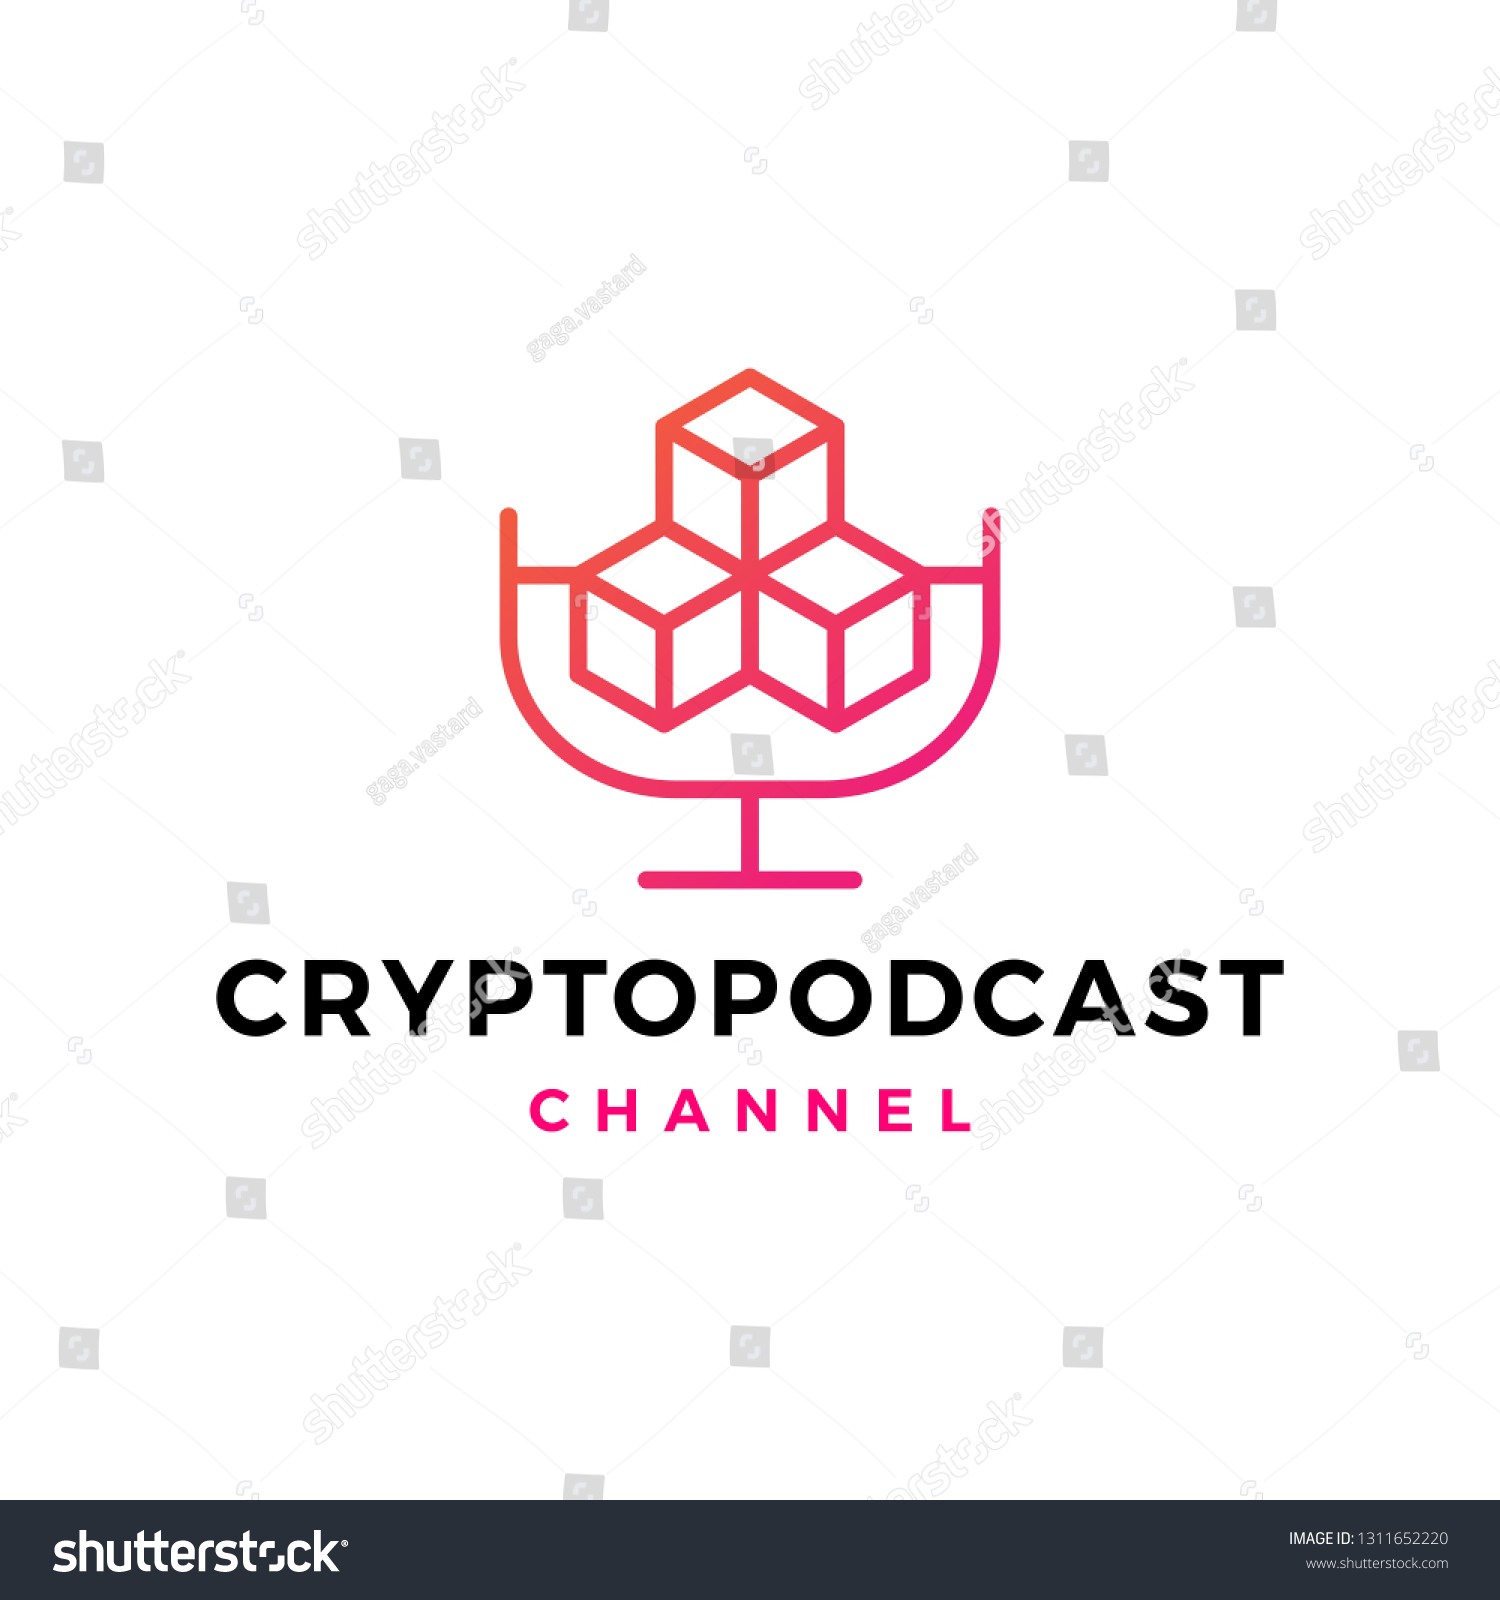 Crypto Podcast Logo Icon Blockchain Cryptocurrency Stock